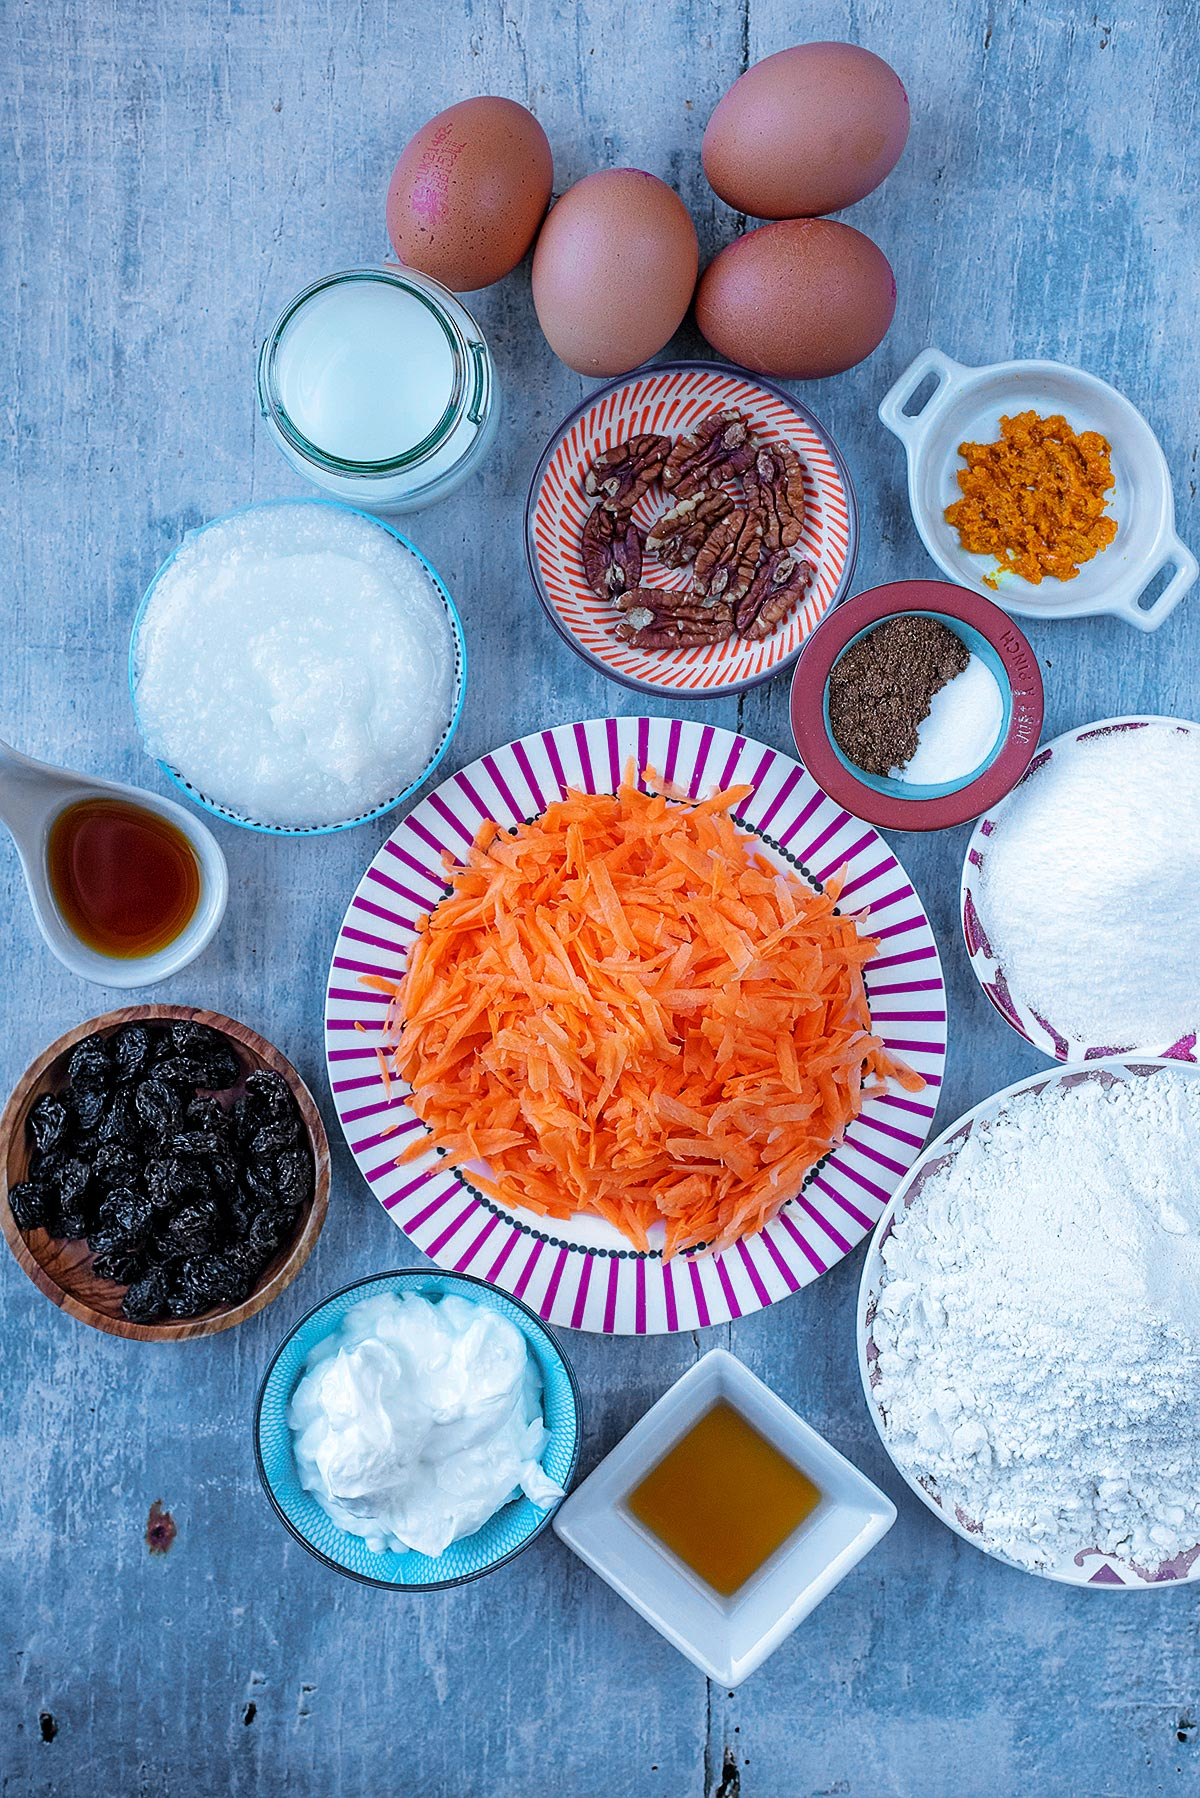 A plate of grated carrot surrounded by flour, sweetener, yogurt, raisins, nuts, spices, eggs, milk and orange zest